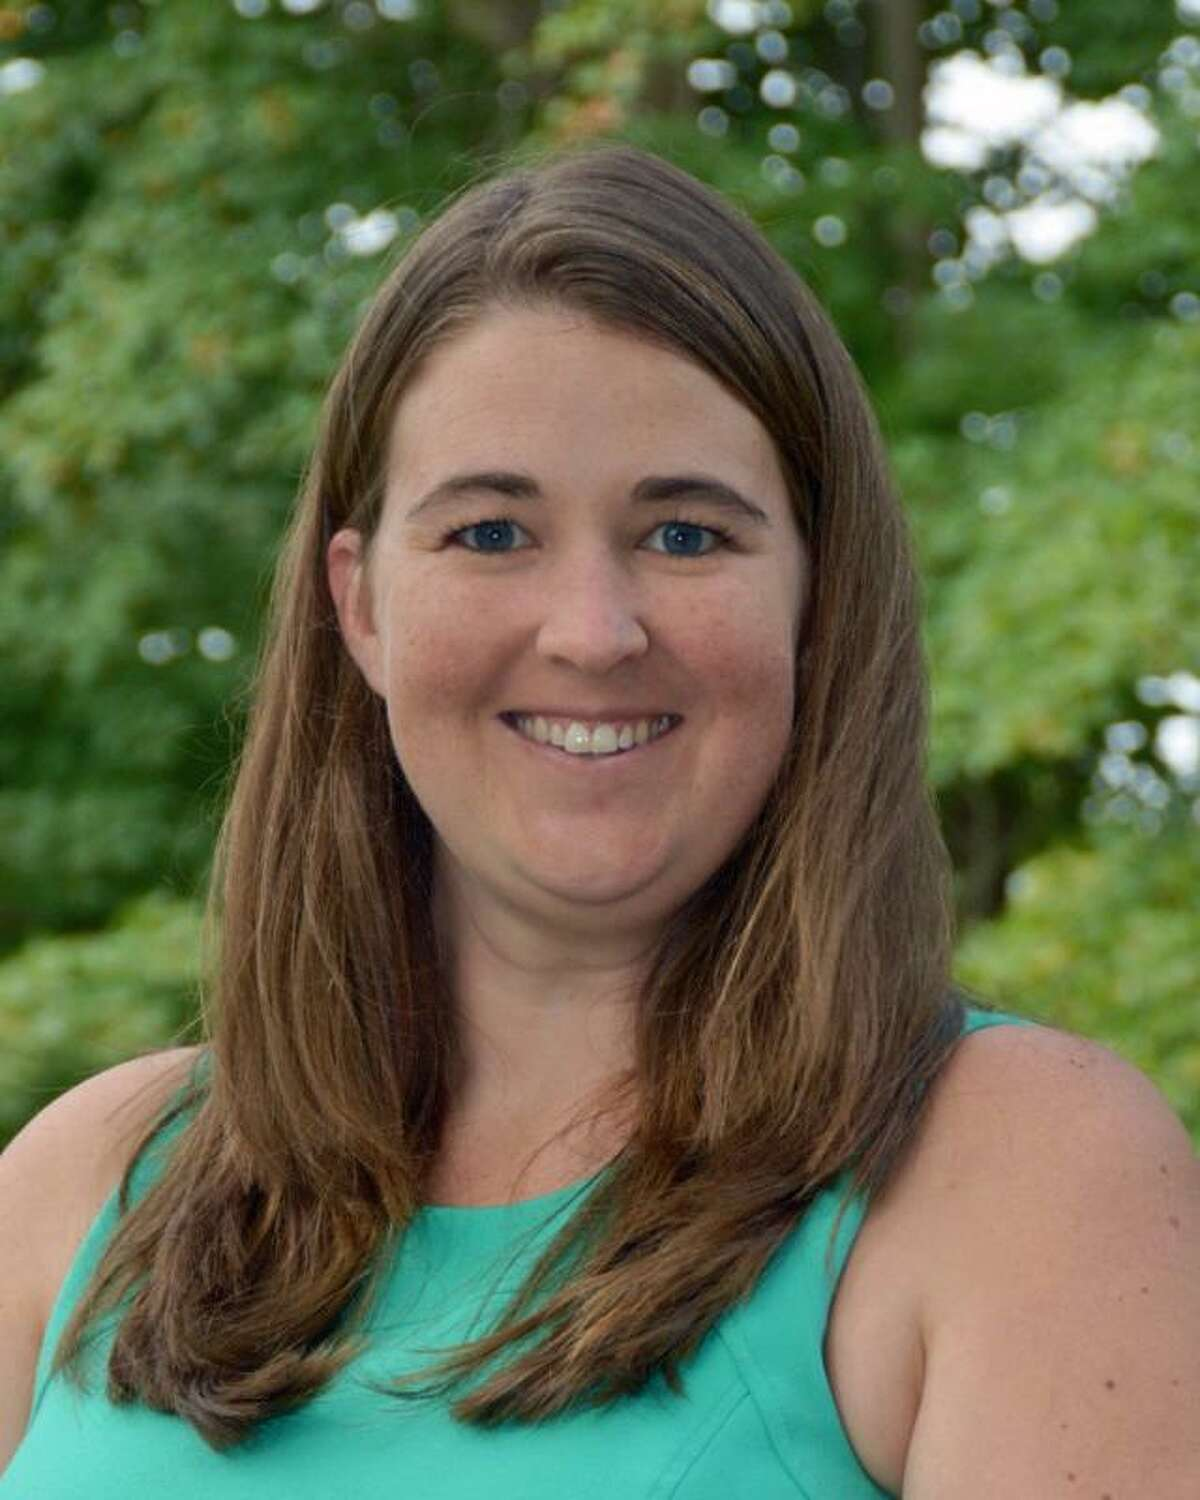 Stanwich School is mourning the loss of music and drama teacher, Kerry Gotschall, 33, who died unexpectedly in her sleep in late December.A memorial service will be held for Gotschall on Jan. 13.